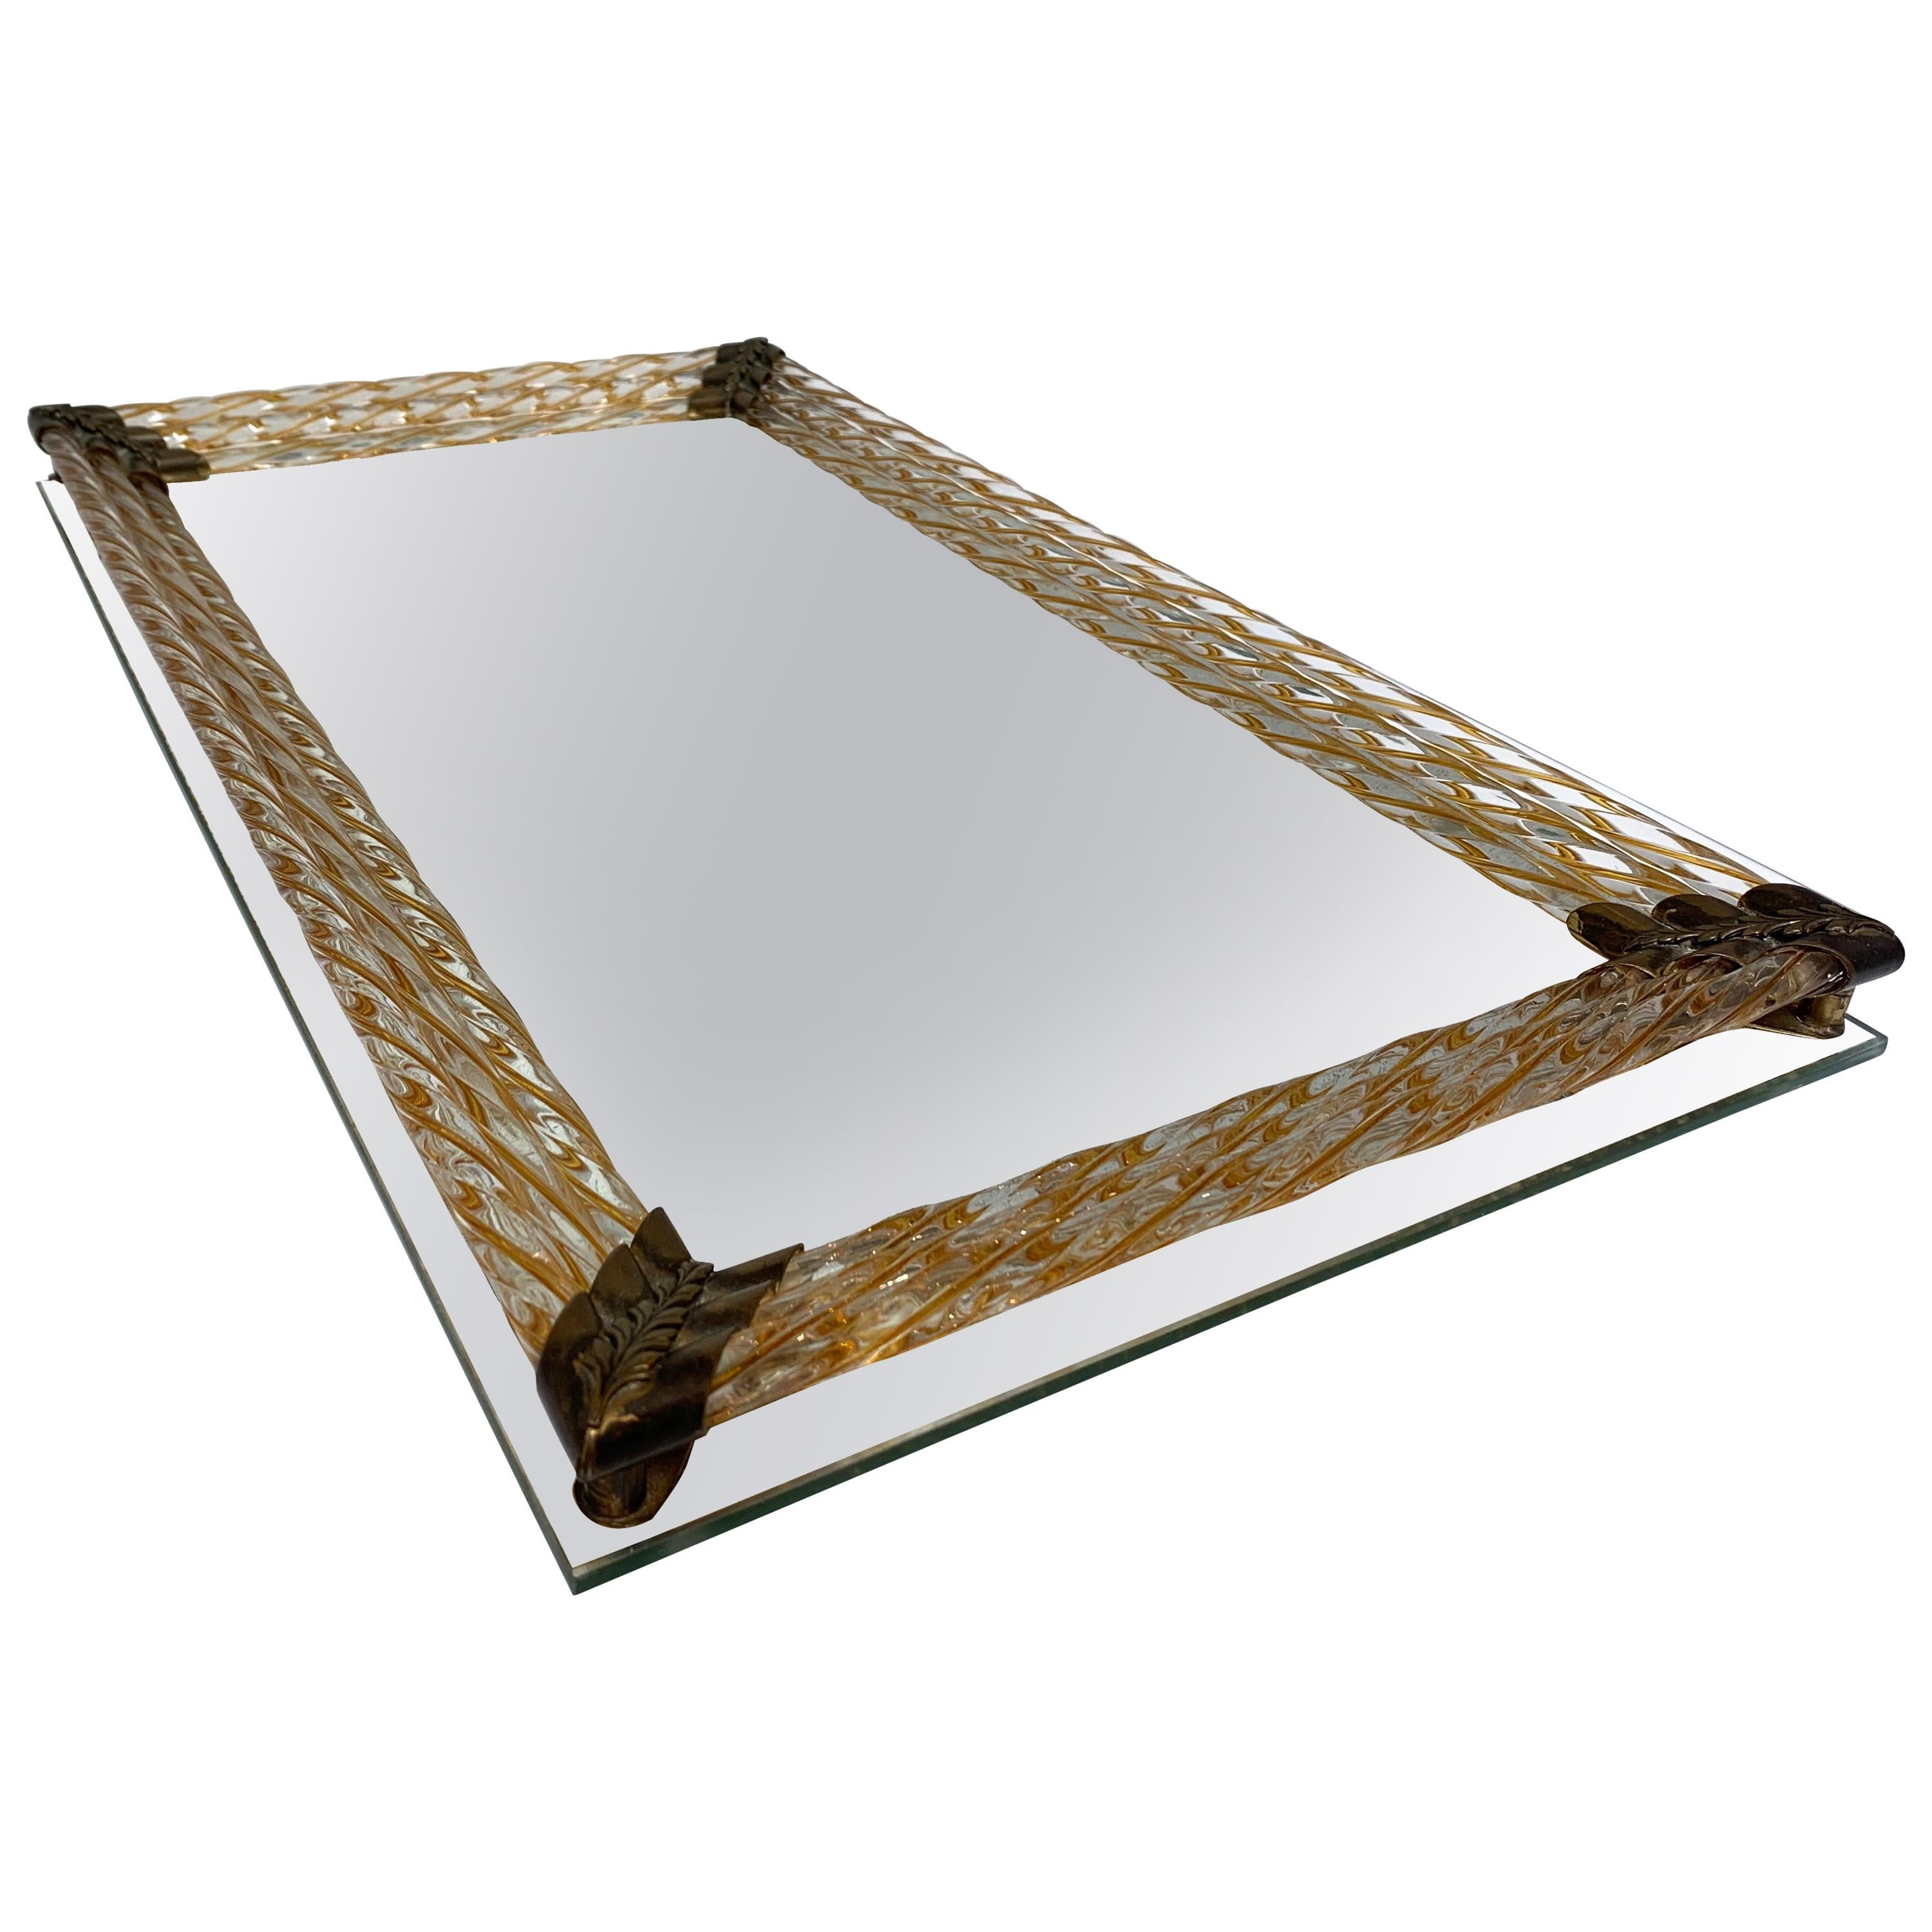 Venetian Mirror Tray with Original Gold Glass Twisted Rods, Brass Hardware